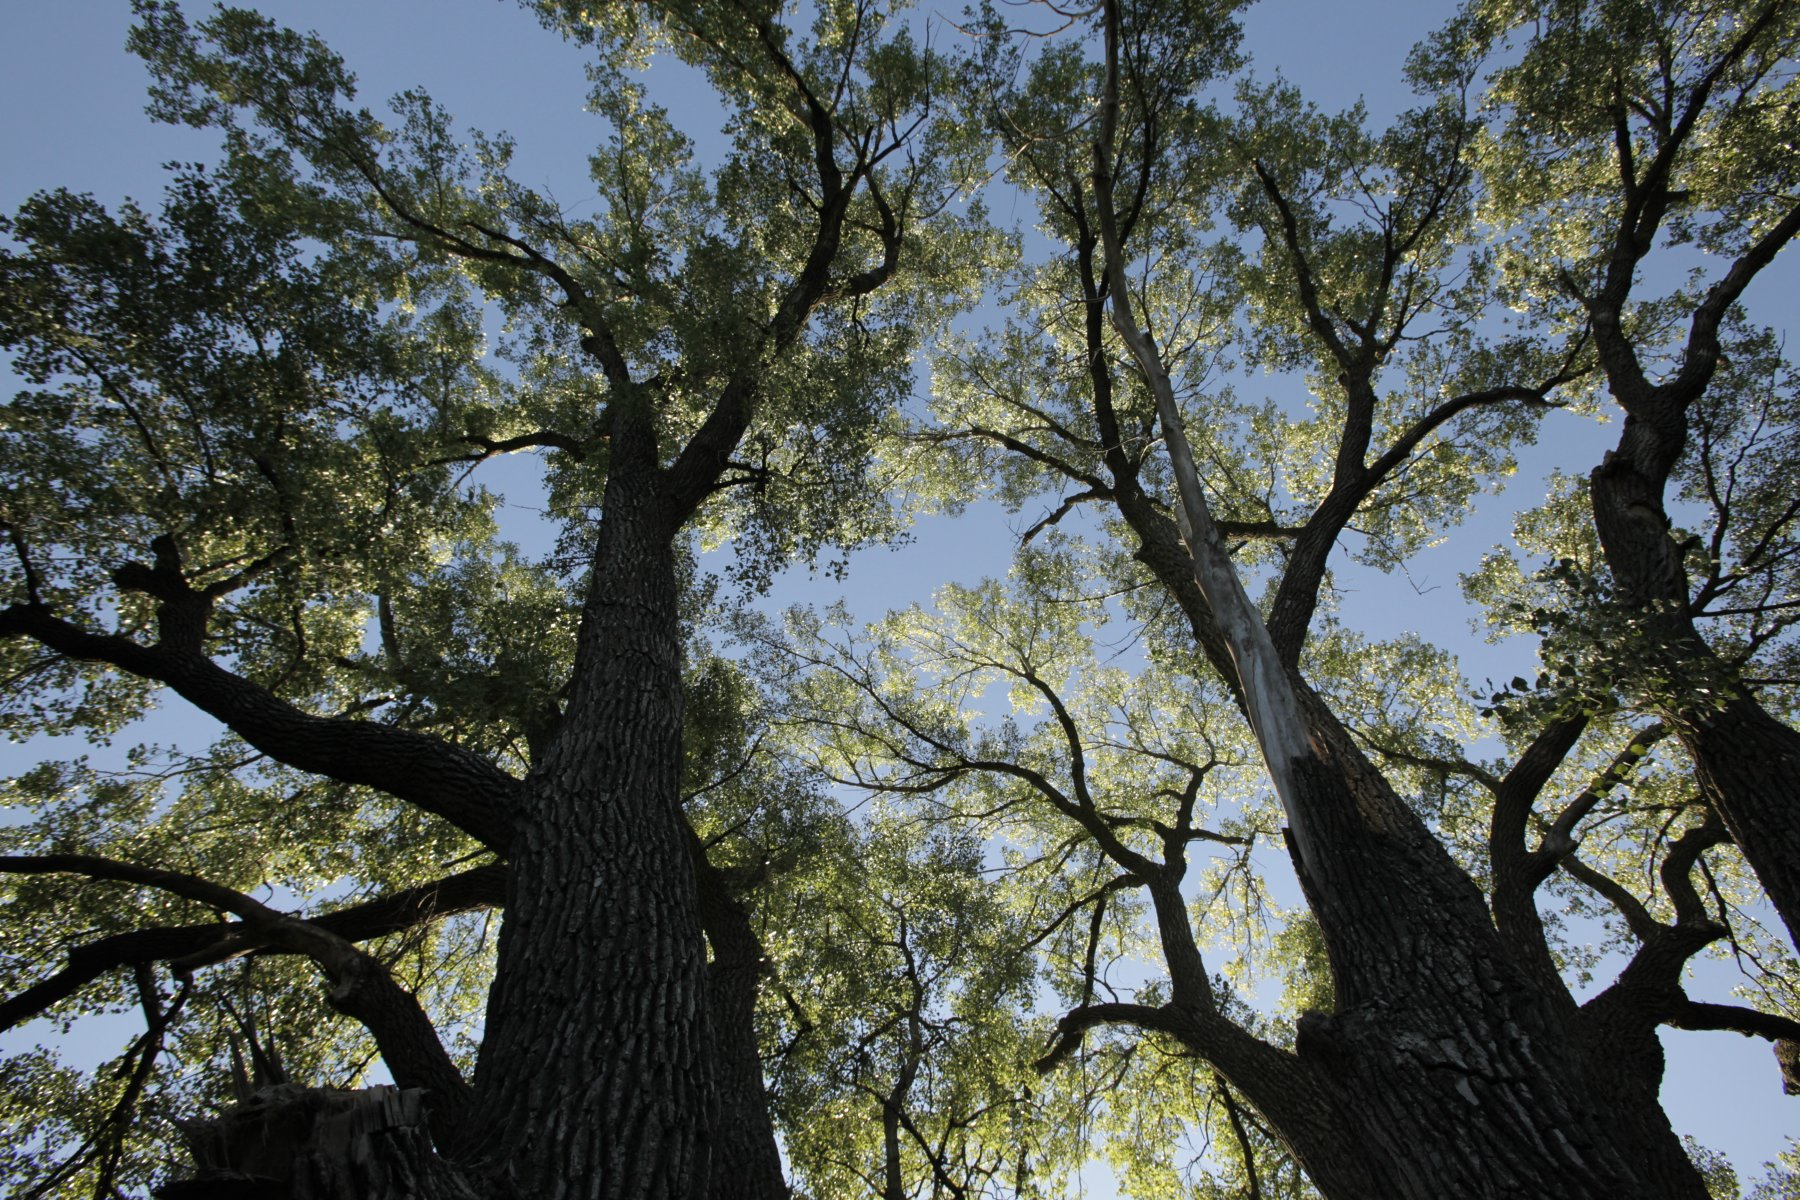 In 2013, this eastern cottonwood near Beatrice was recognized as largest of its kind in the United States.